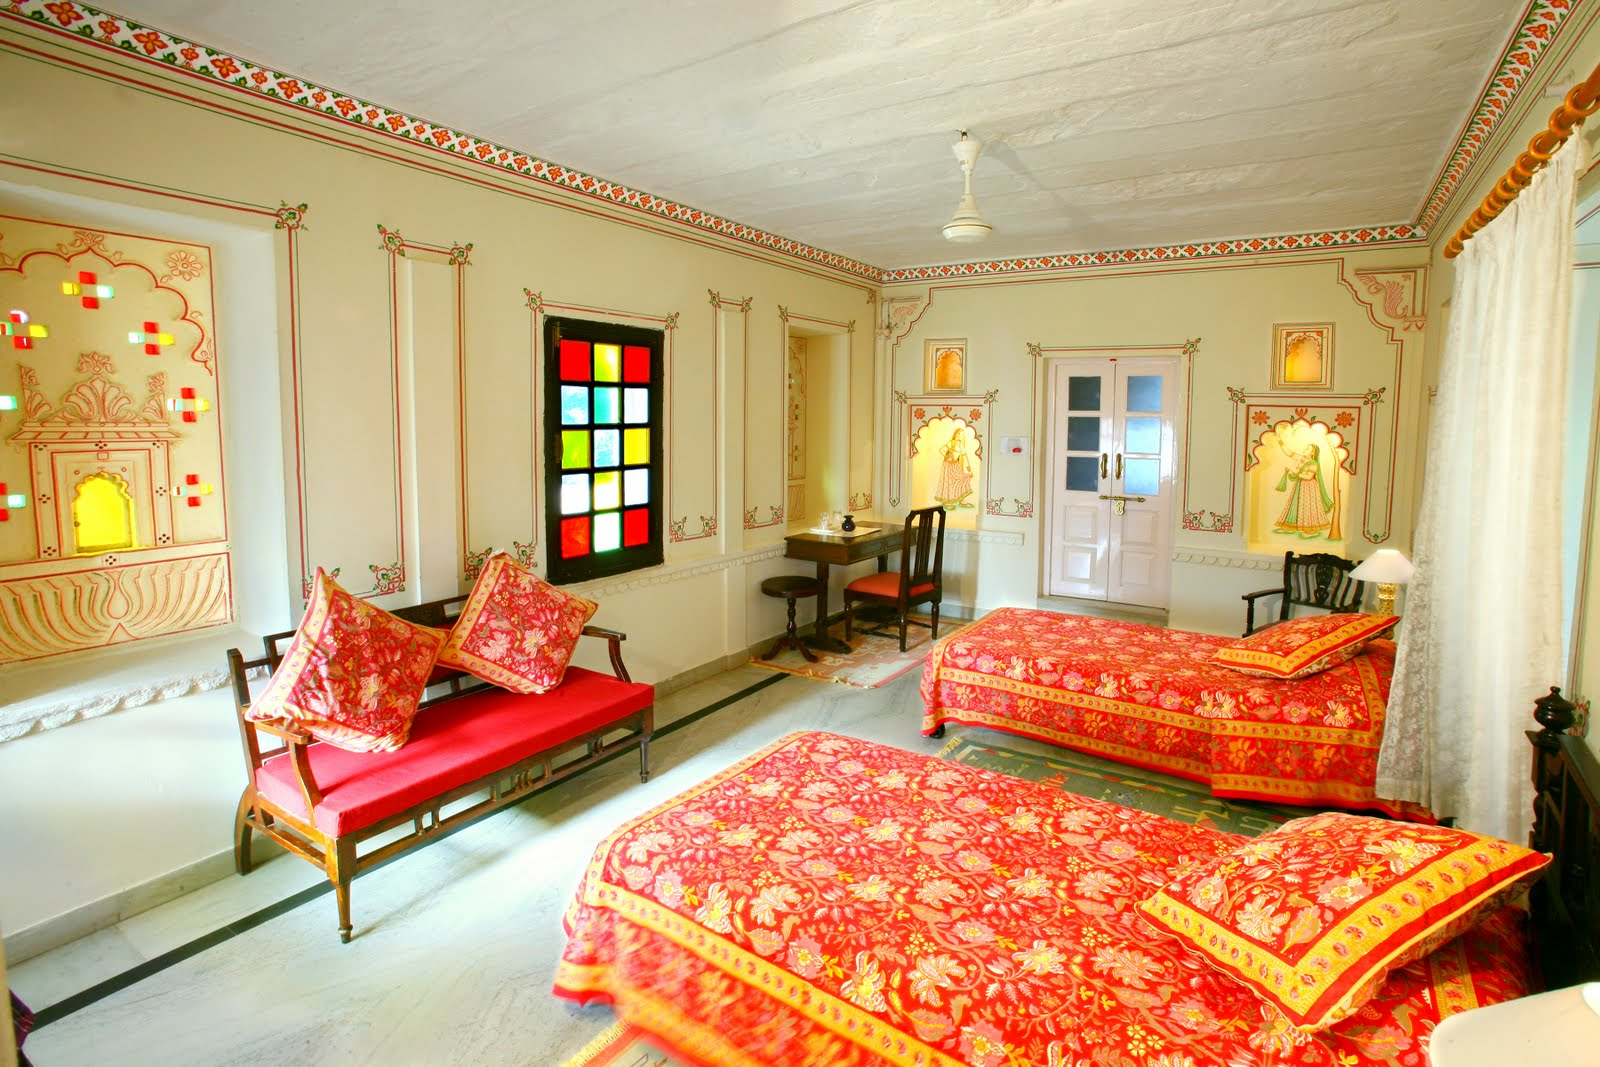 Rajasthani style interior design ideas palace interiors for Interior design and decoration